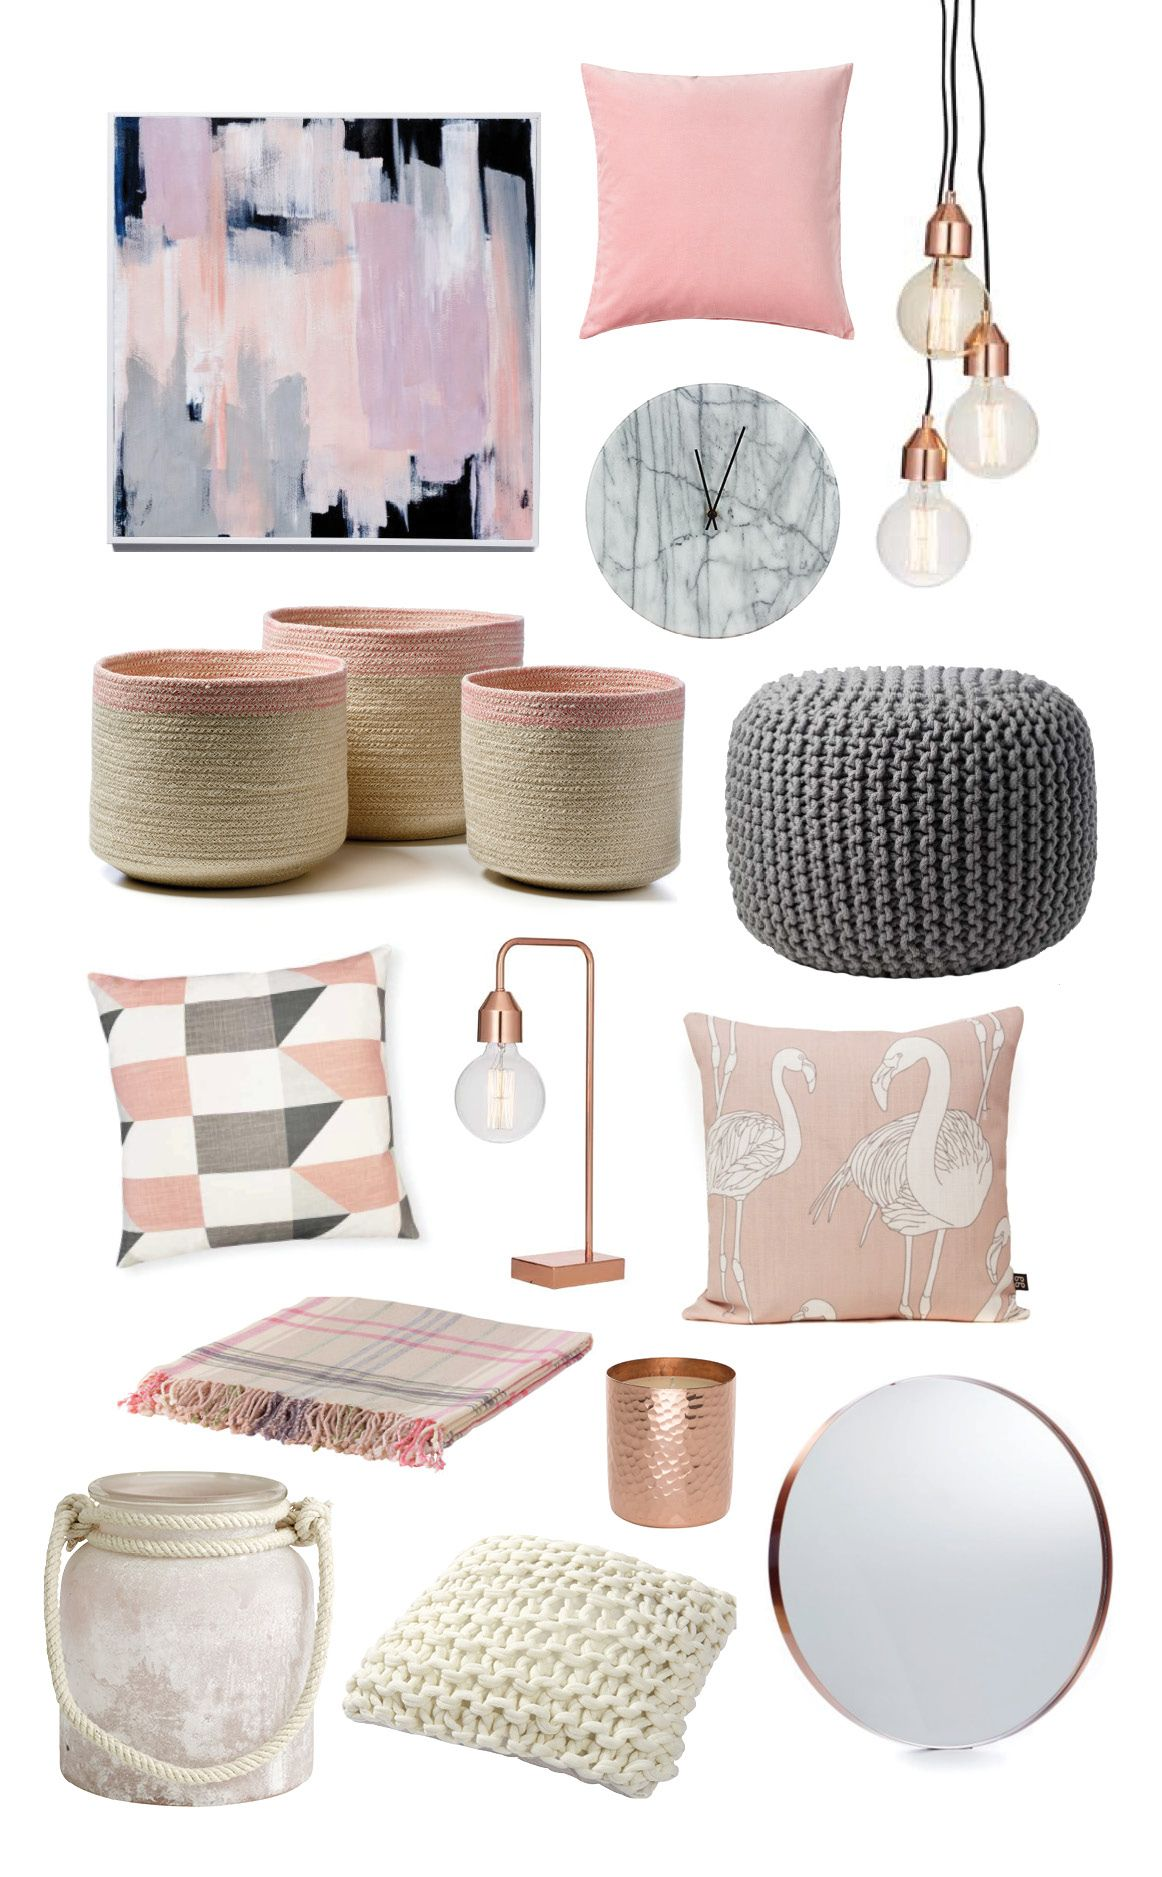 Trending items blush pink click through for stockists Funky bedroom accessories